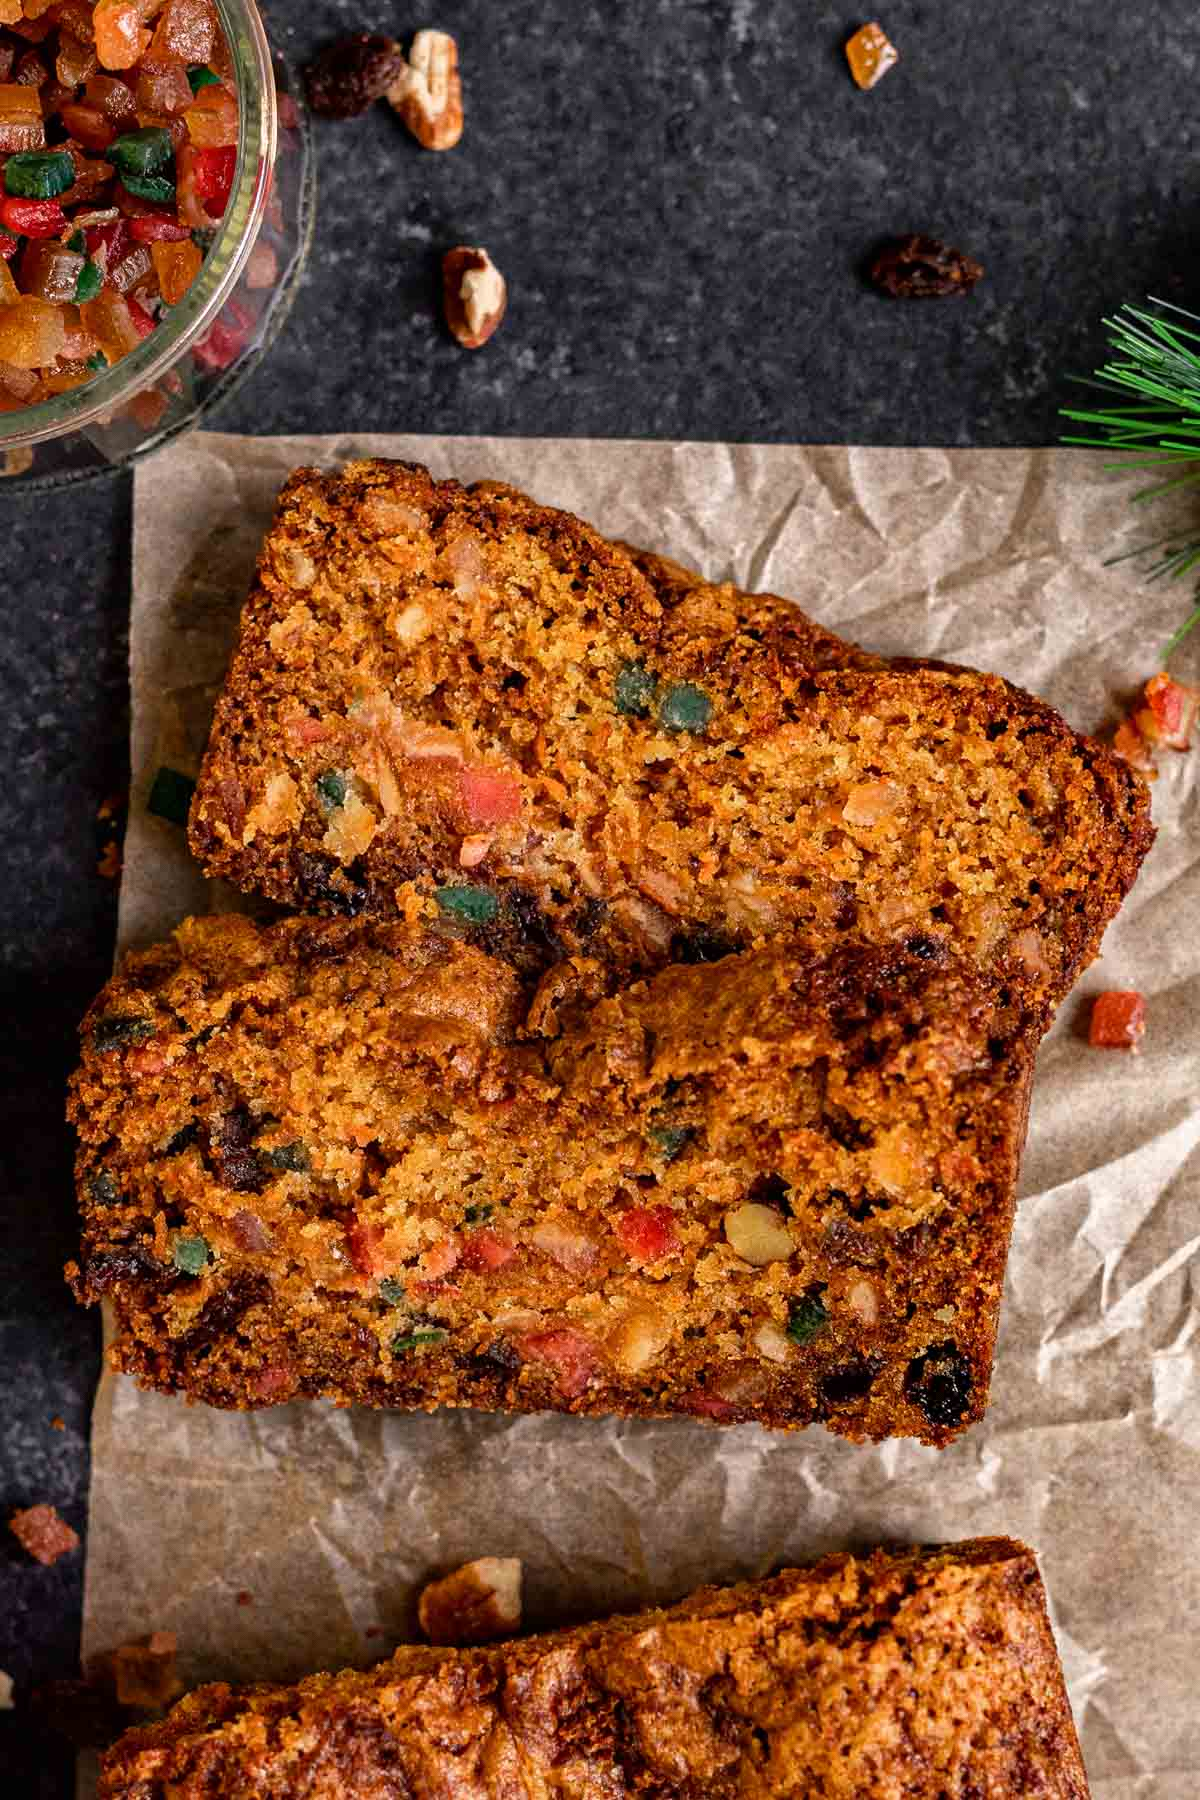 Carrot Fruitcake sliced on parchment